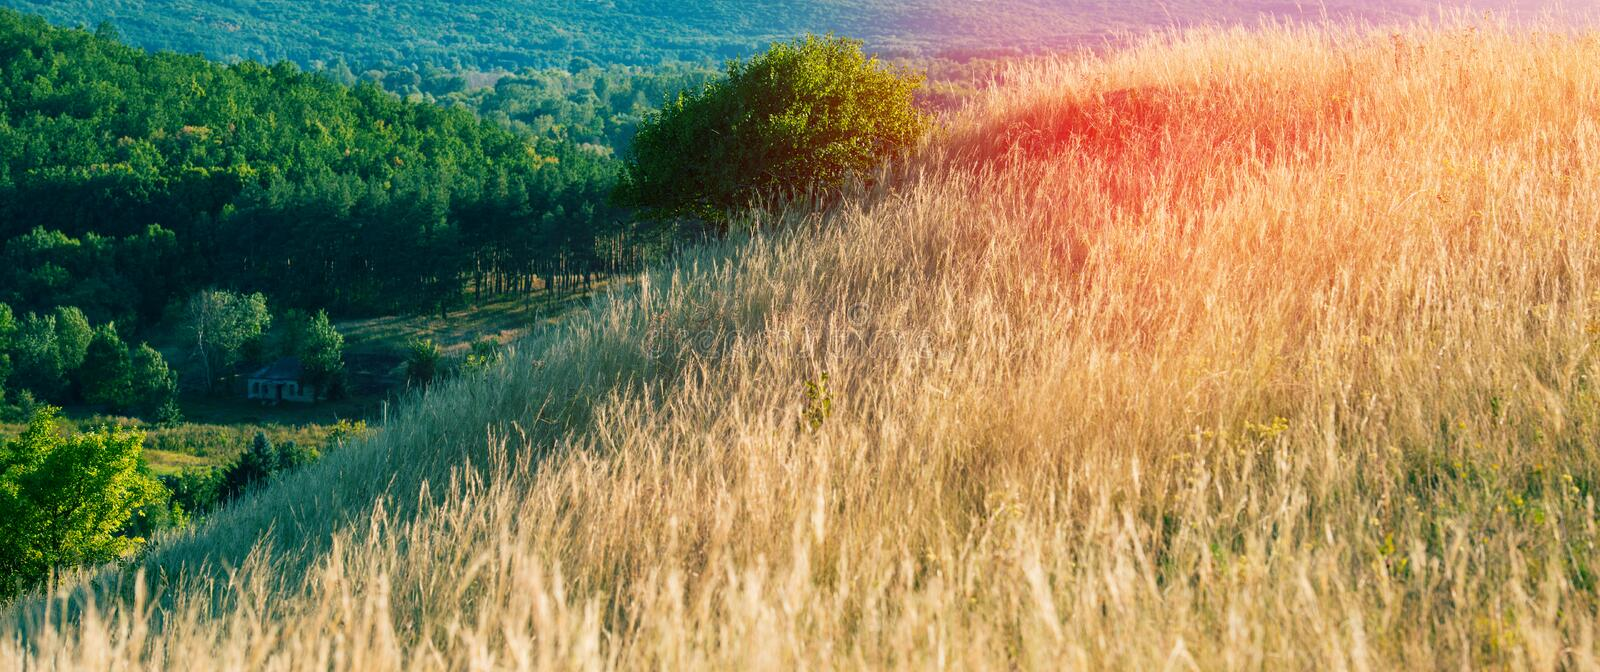 Steppe and forest stock image